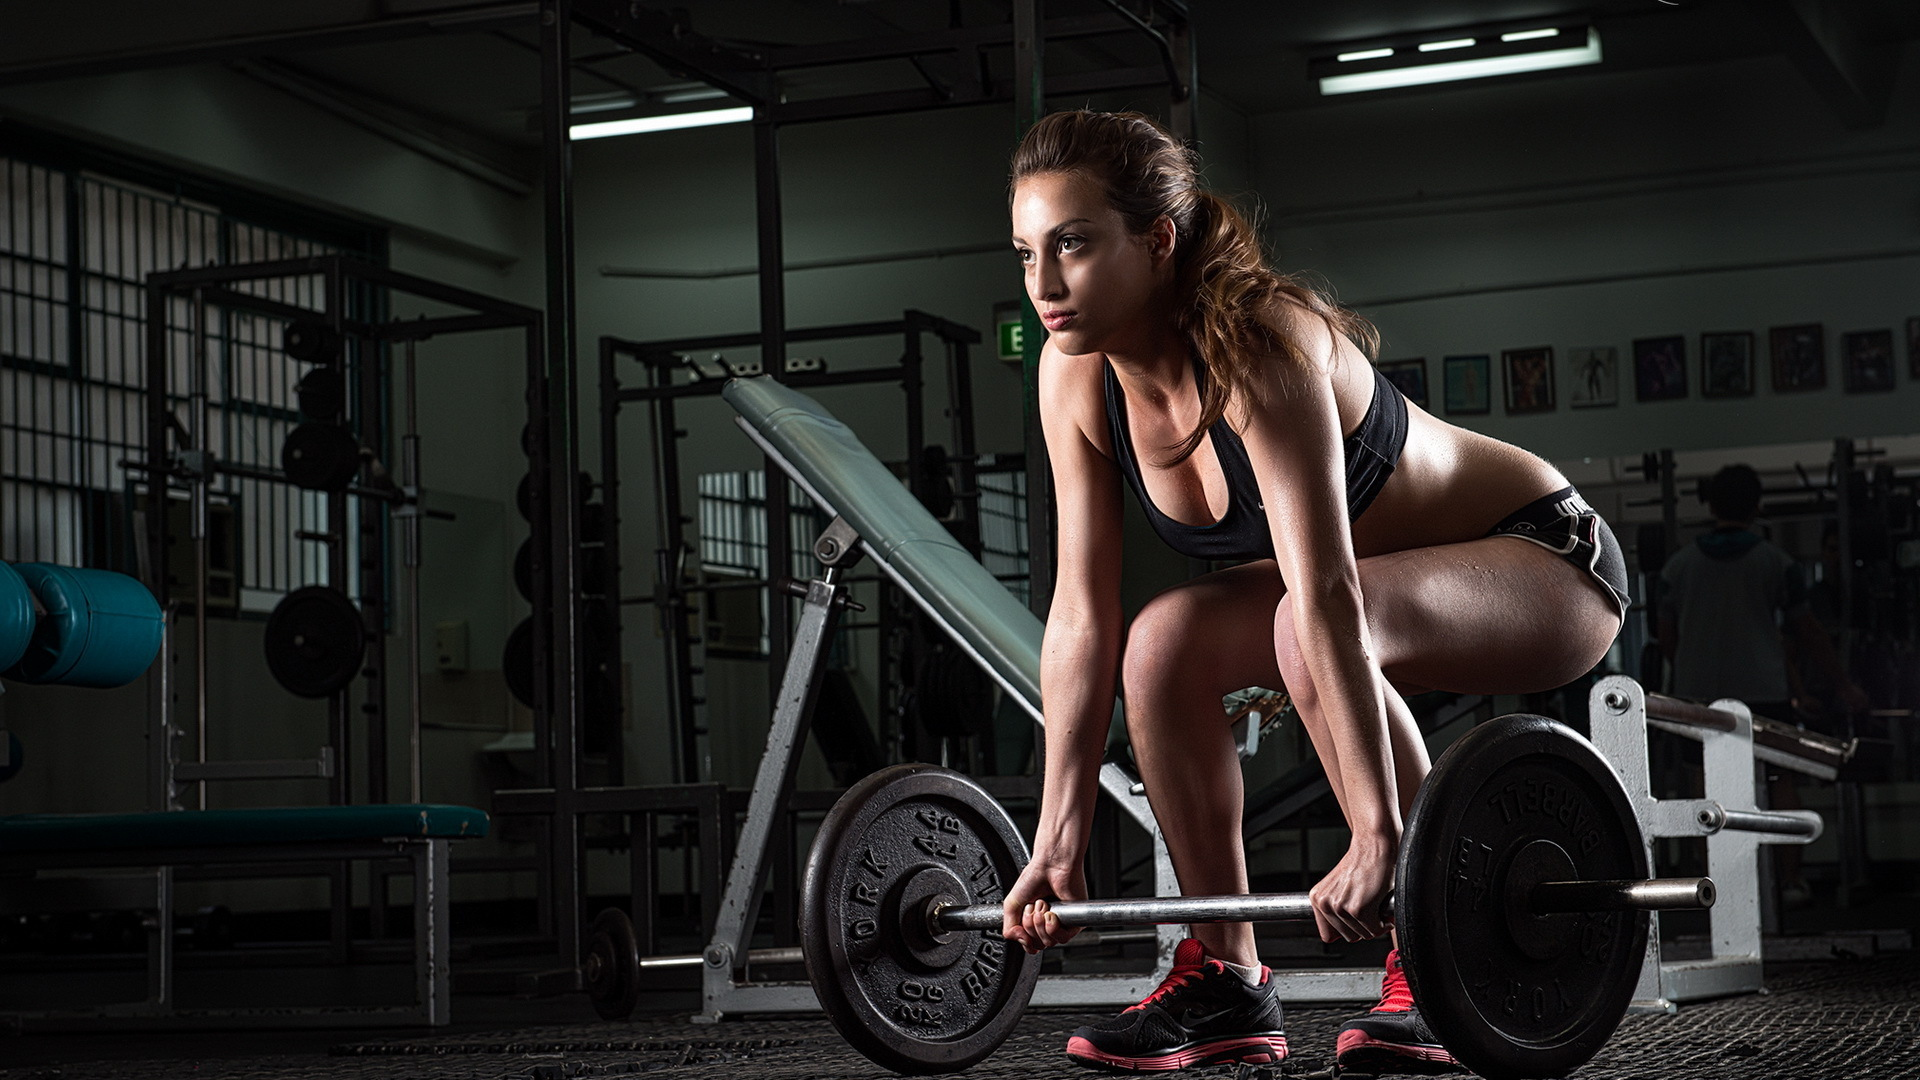 girl fitness wallpapers hd